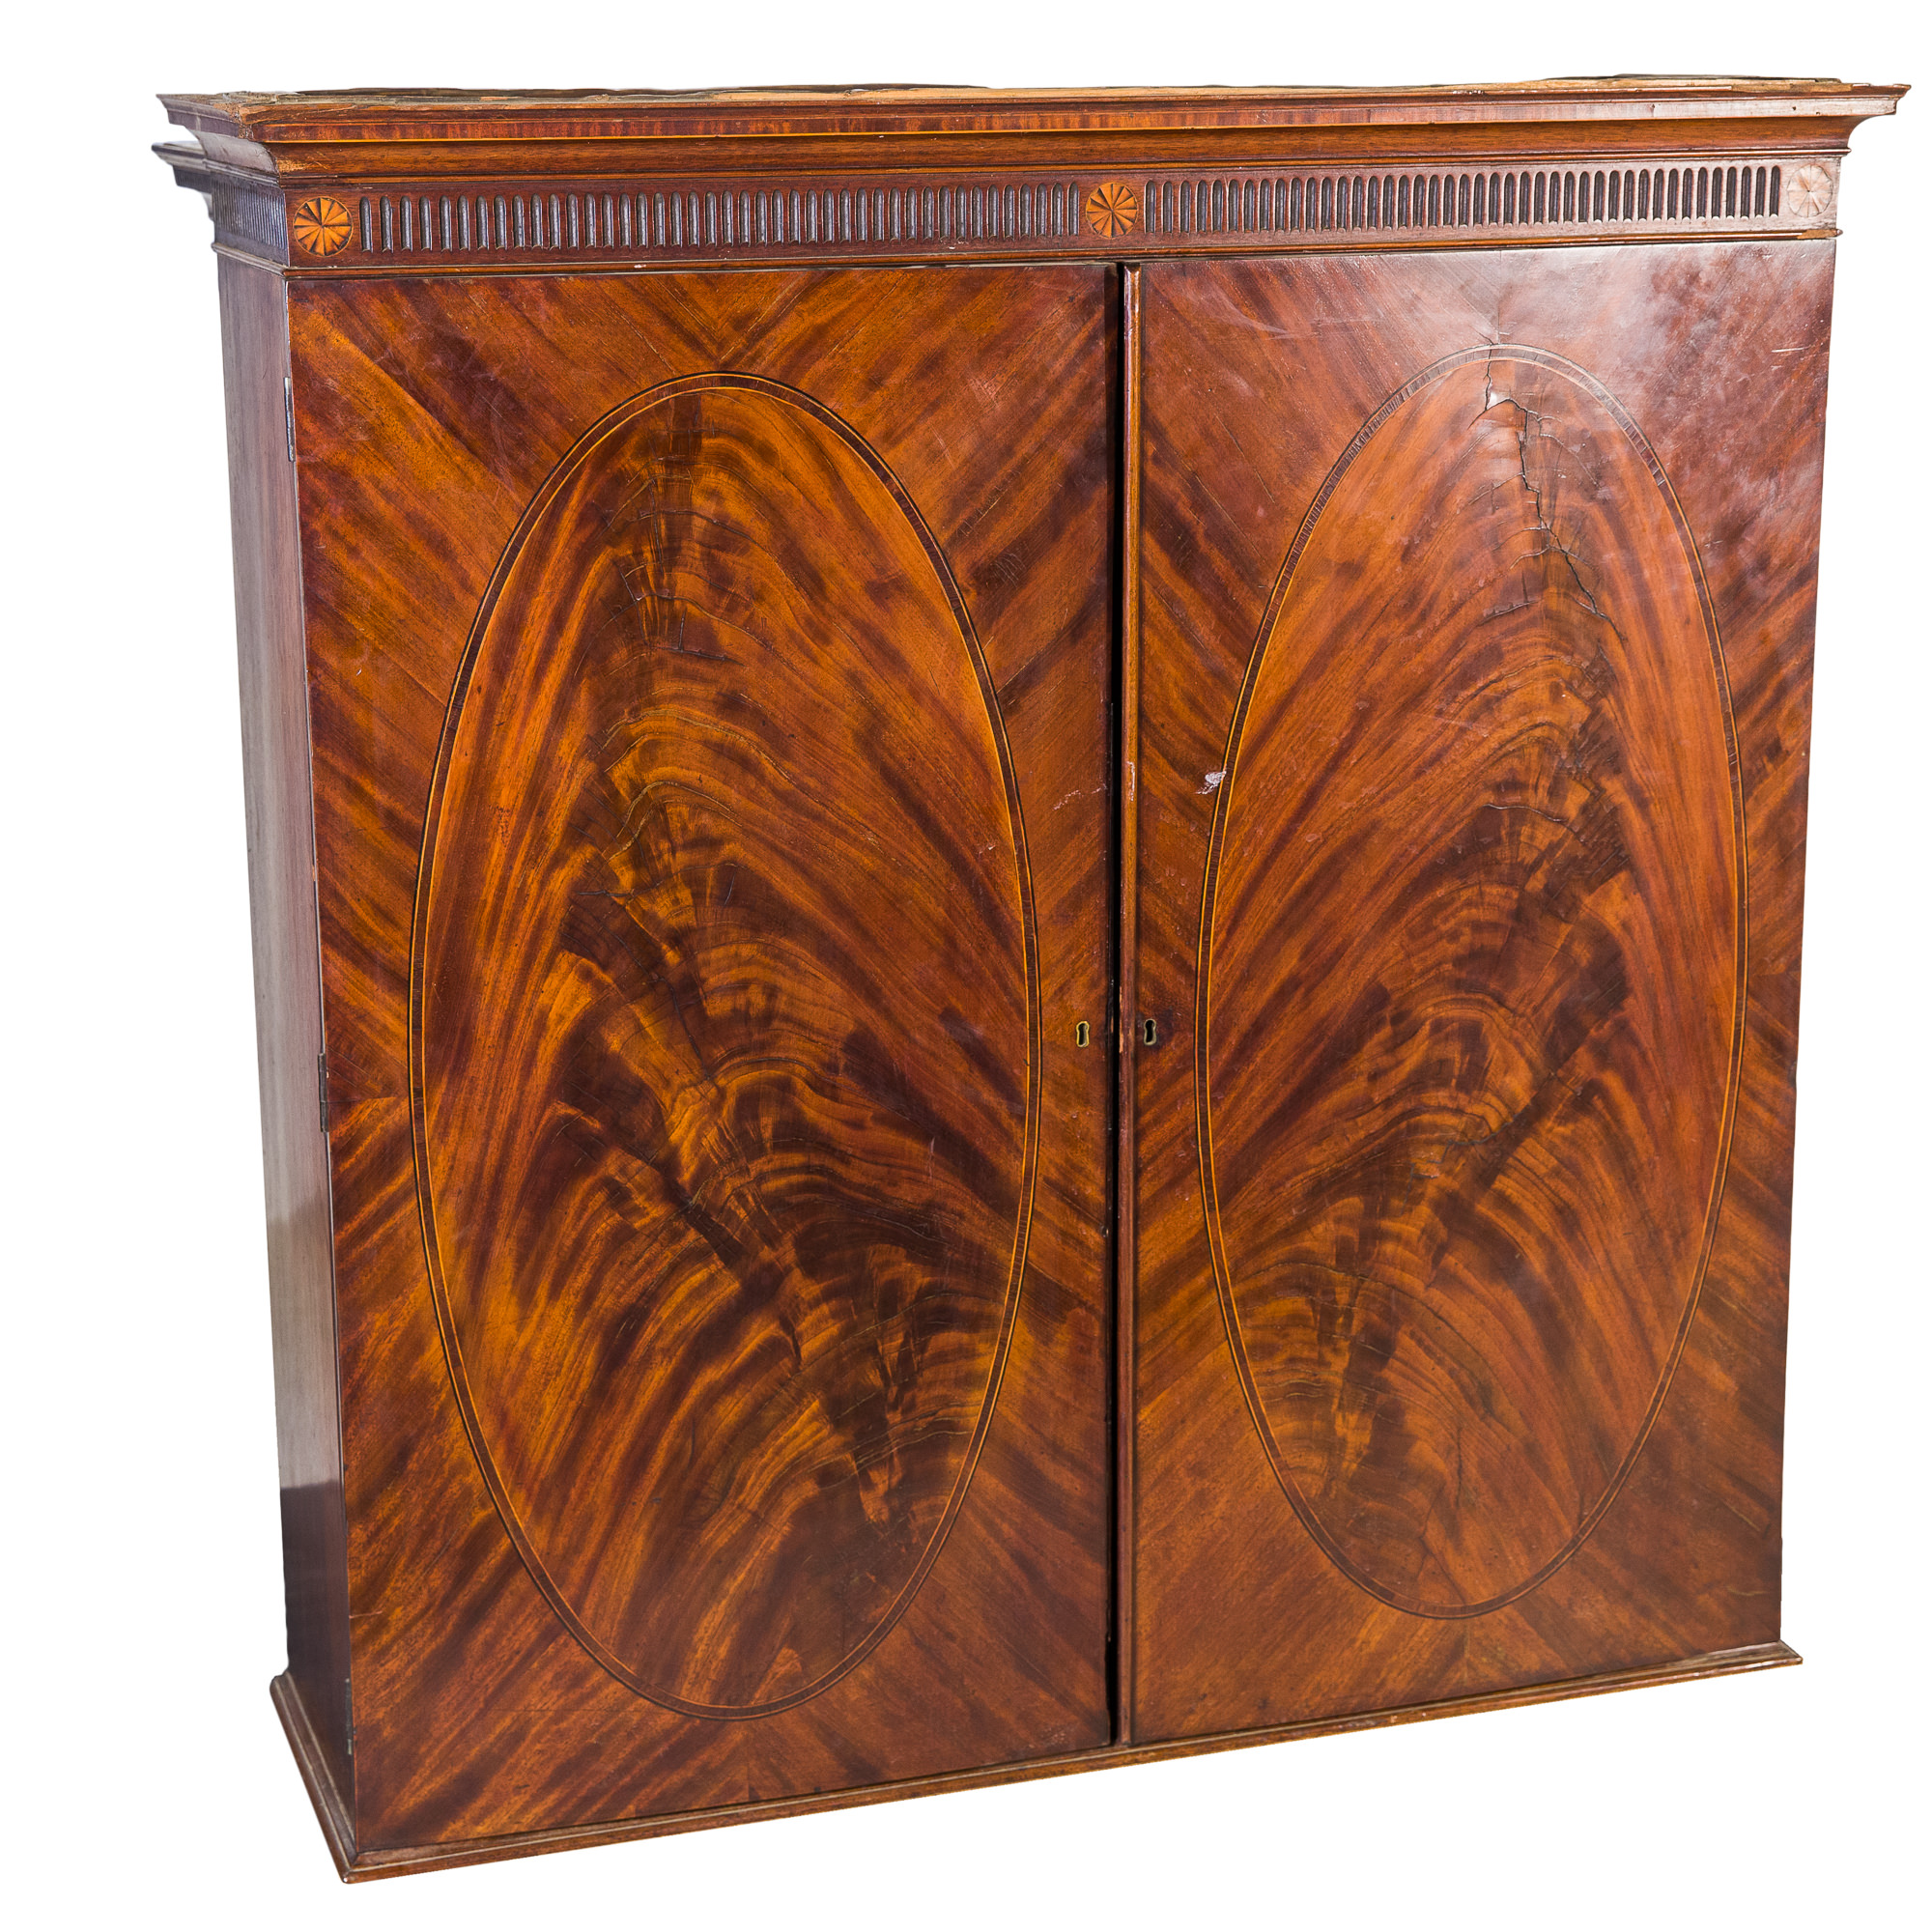 'Mahogany Blind Bookcase Top with Oval Flame Mahogany Panels Early 19th Century'